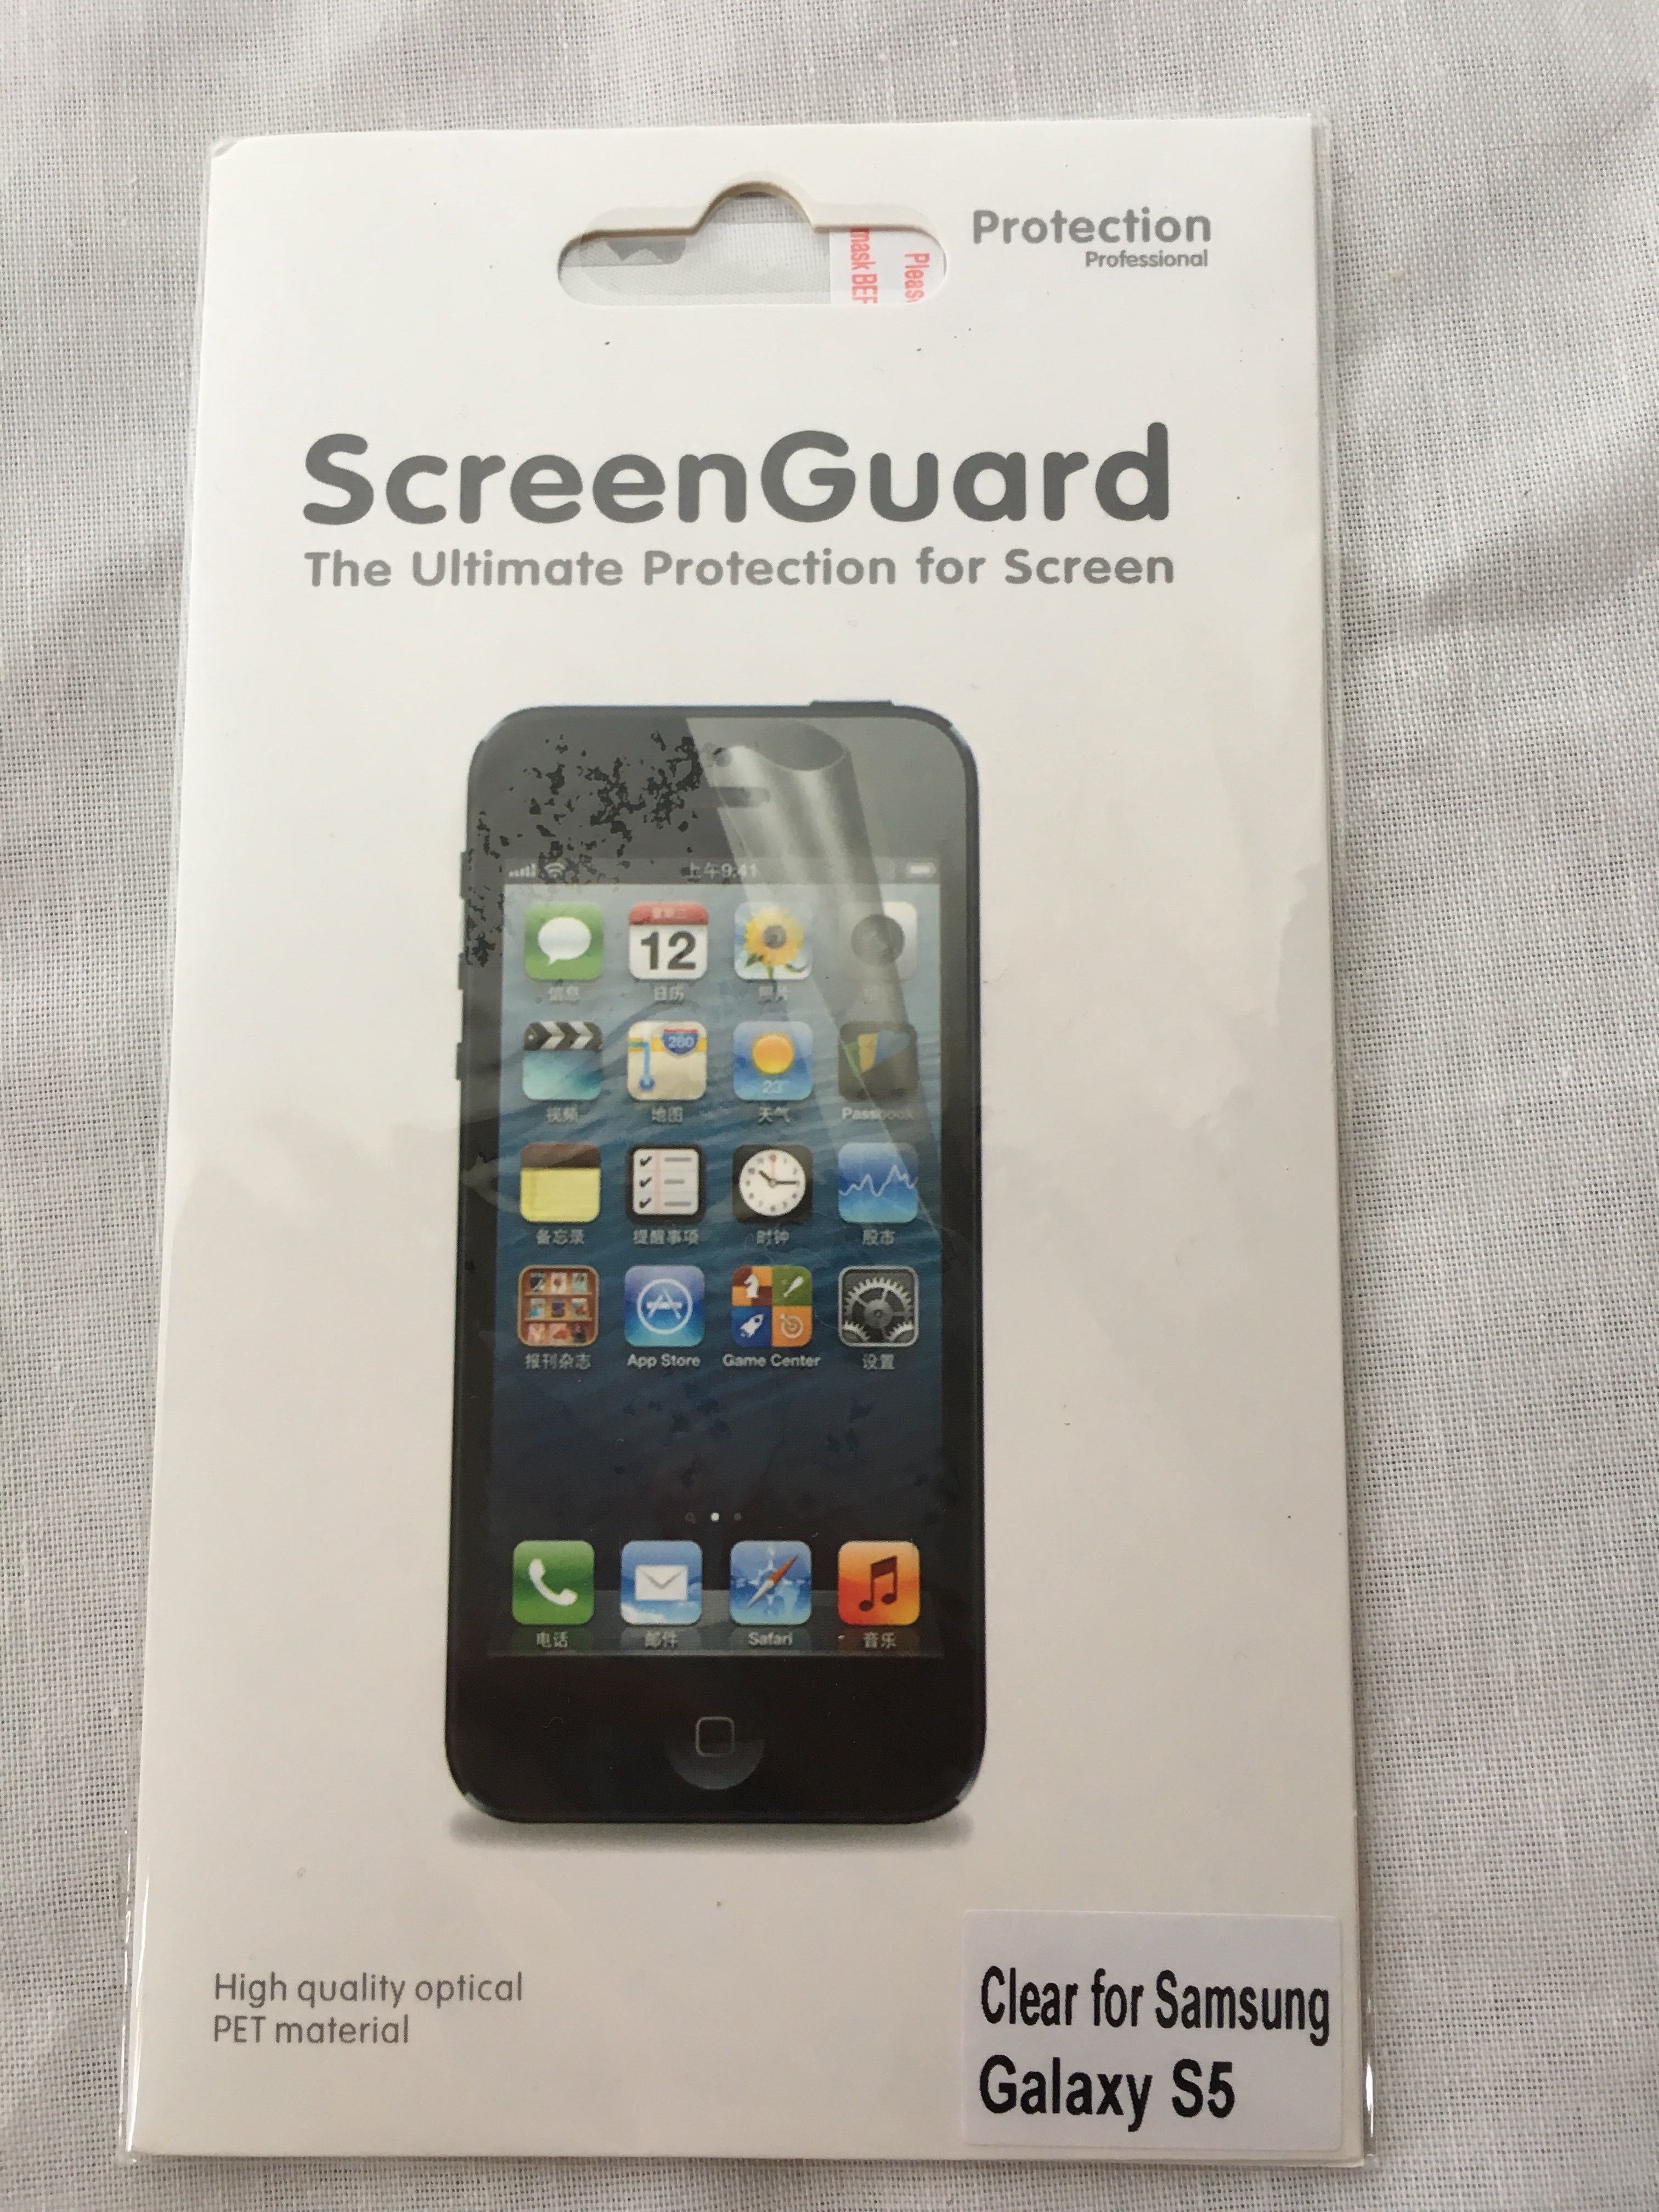 Samsung galaxy S5 clear screen protector, Electronics, Mobile